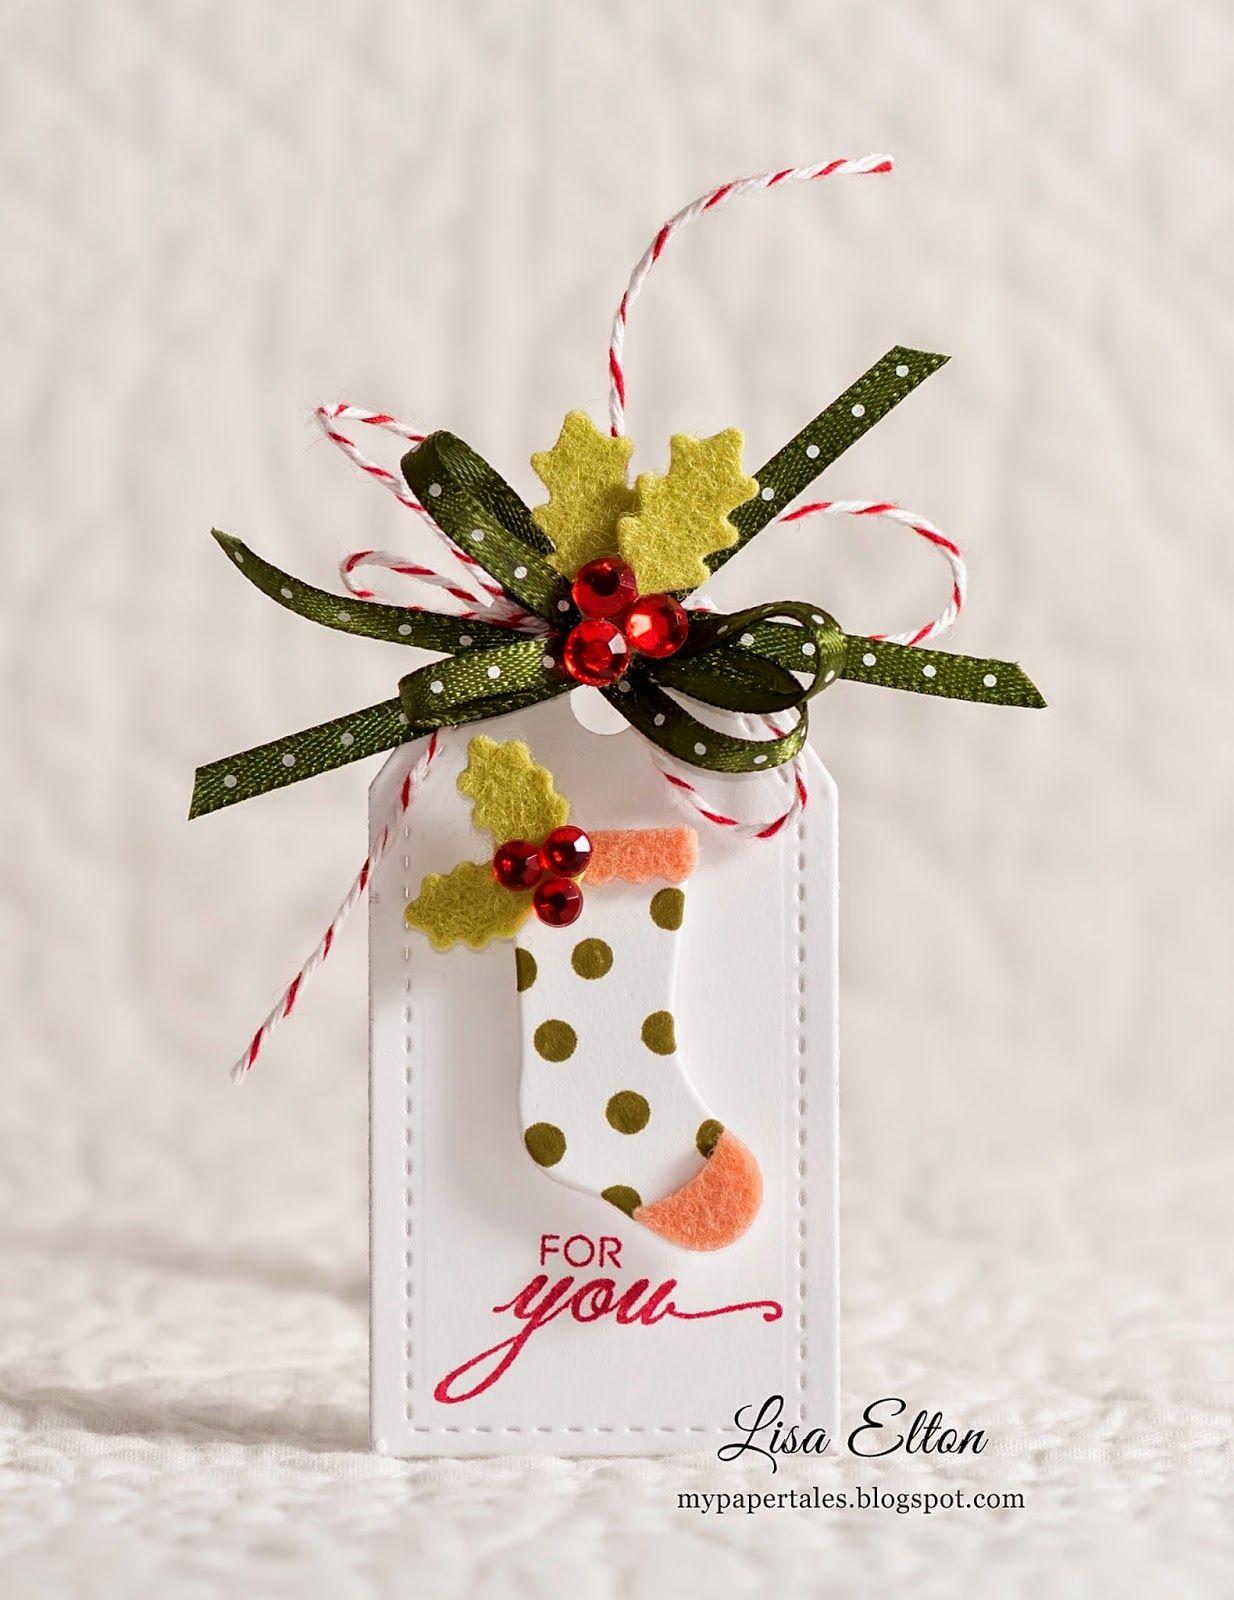 25 Days of Christmas Tags Day 2 and CCC 120 Xmas tags